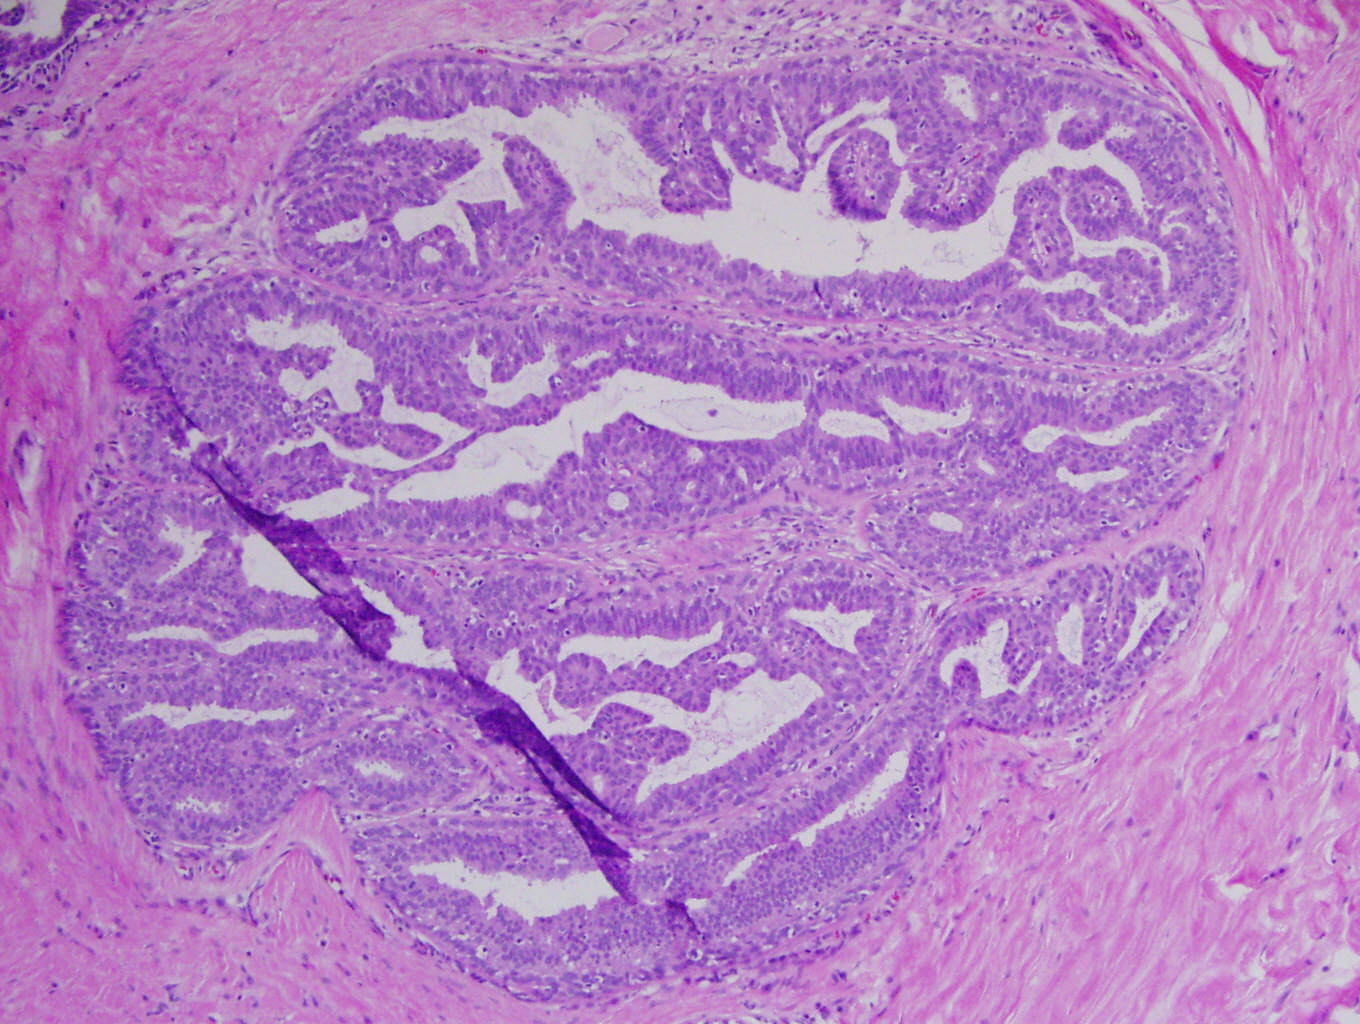 intraductal papilloma tumor